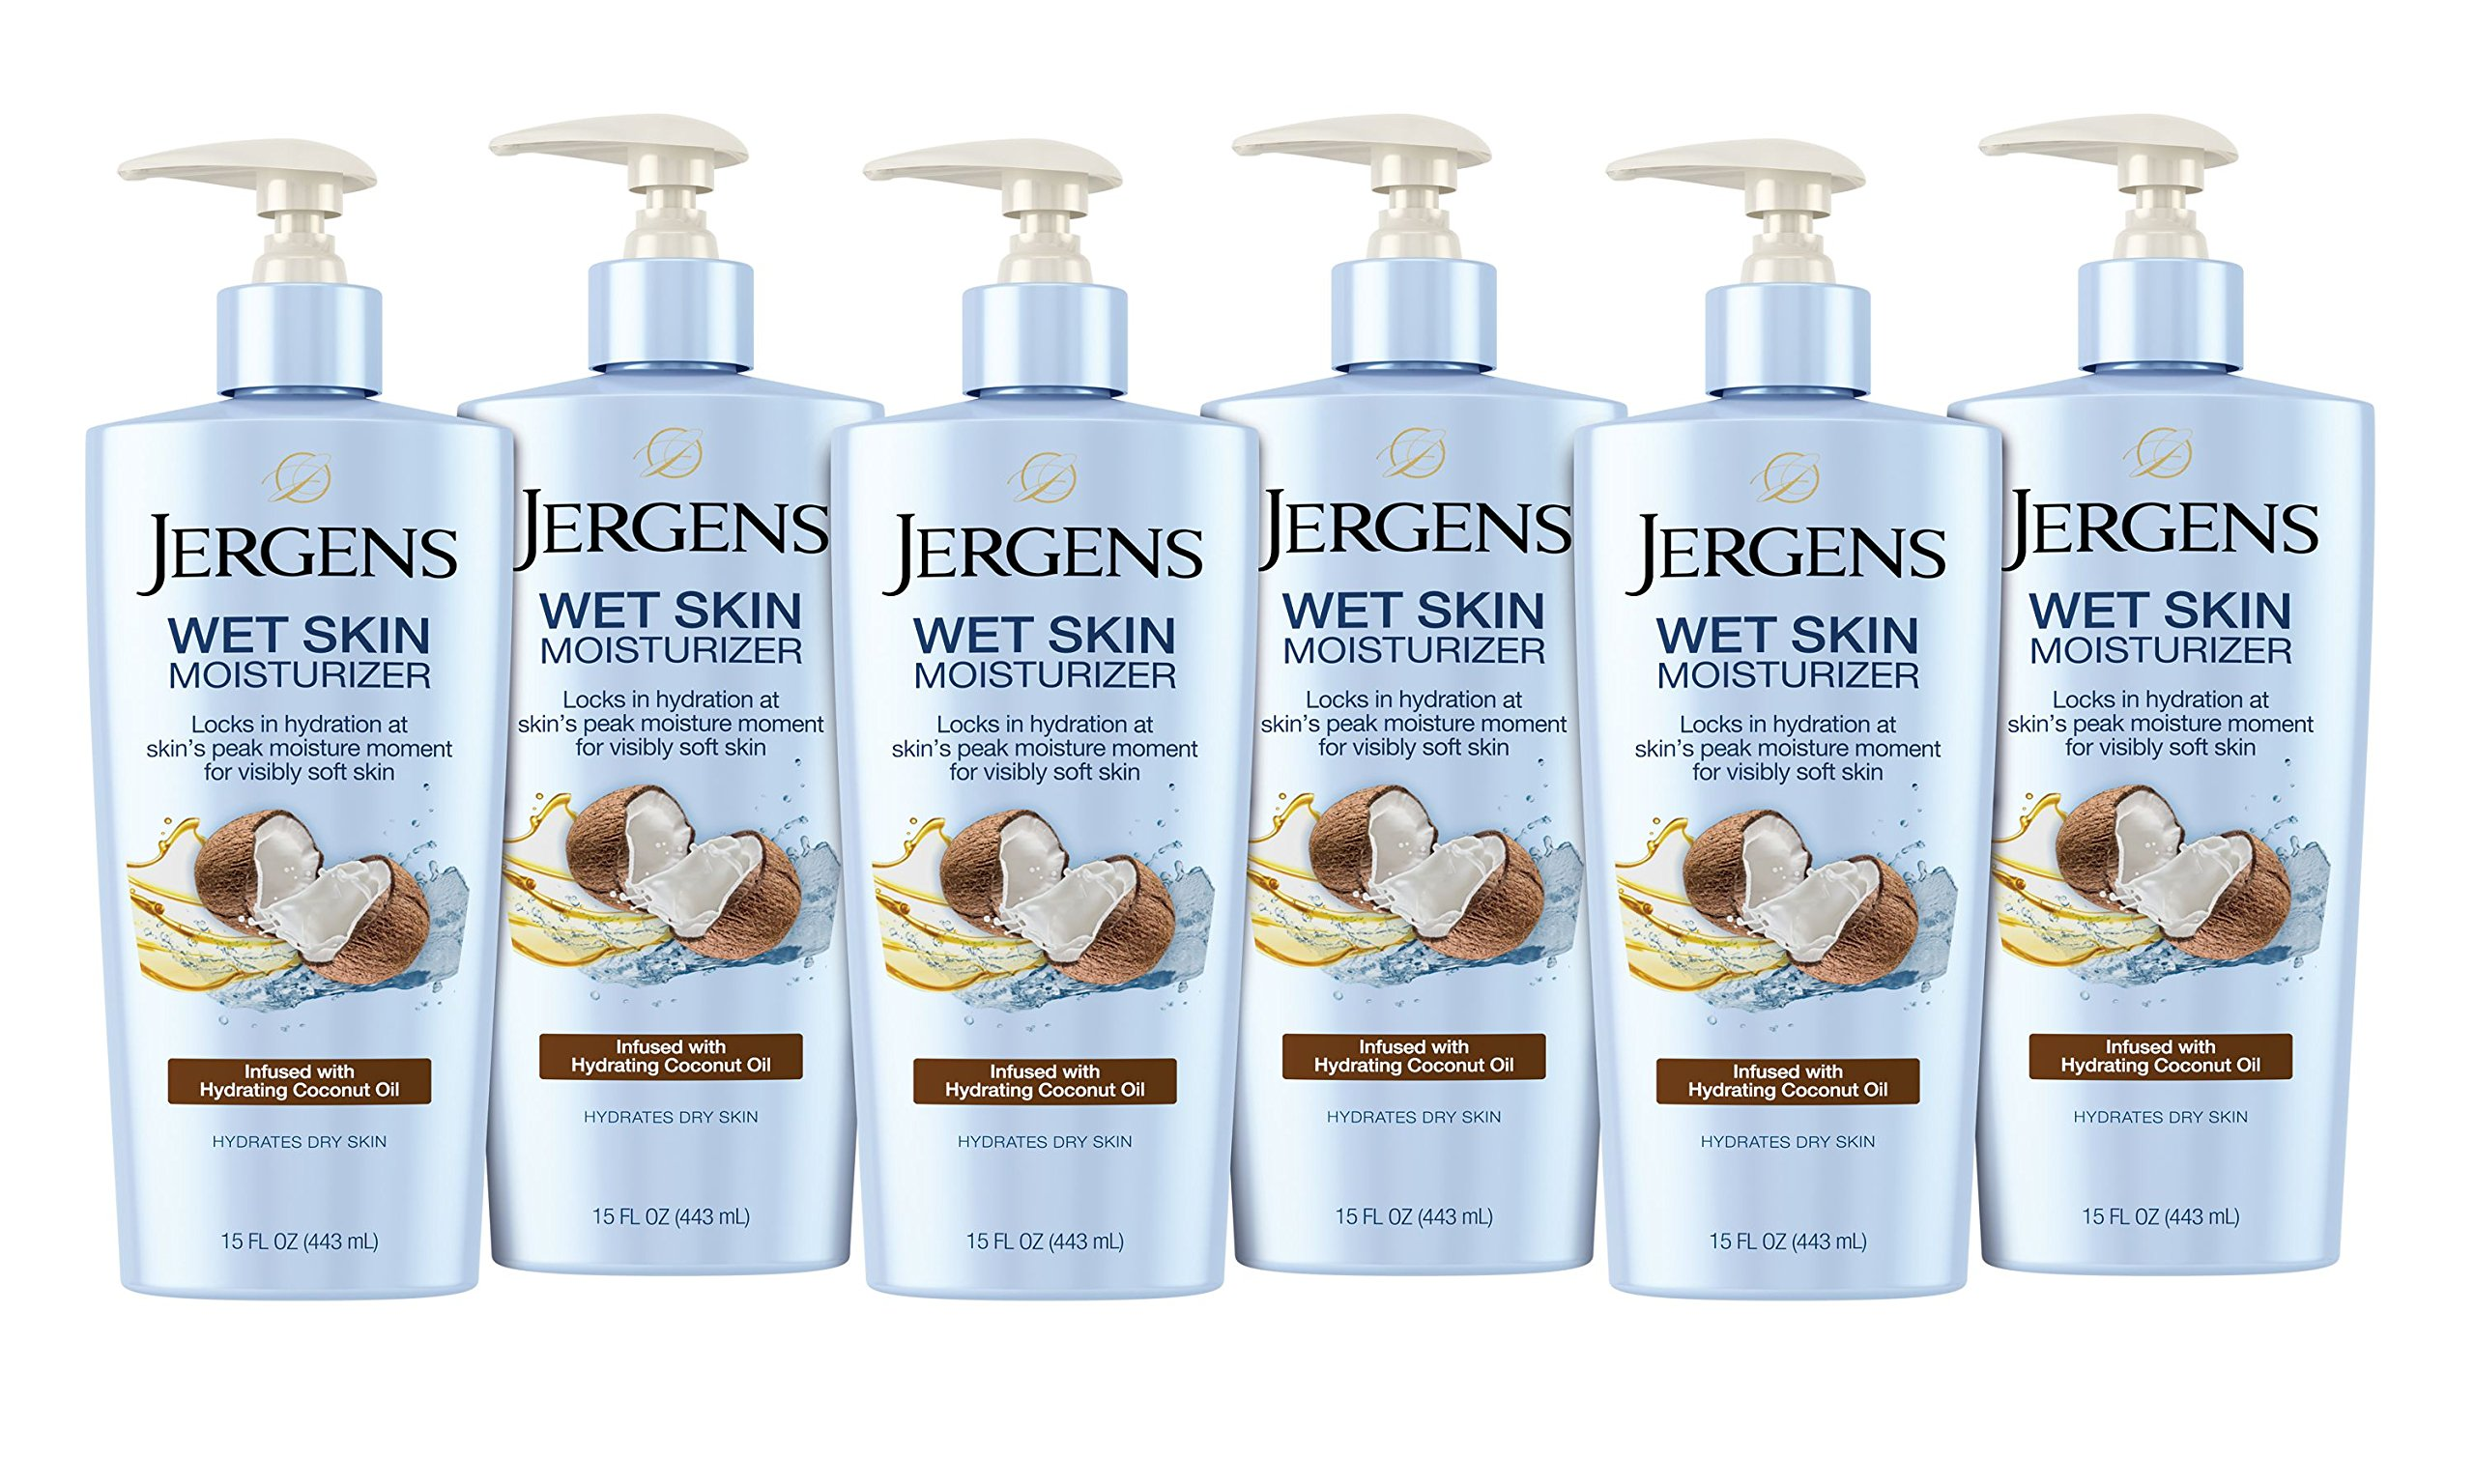 Jergens Wet Skin Body Moisturizer with Refreshing Coconut Oil, 15 Fl Oz (Pack of 6) (Packaging May Vary)